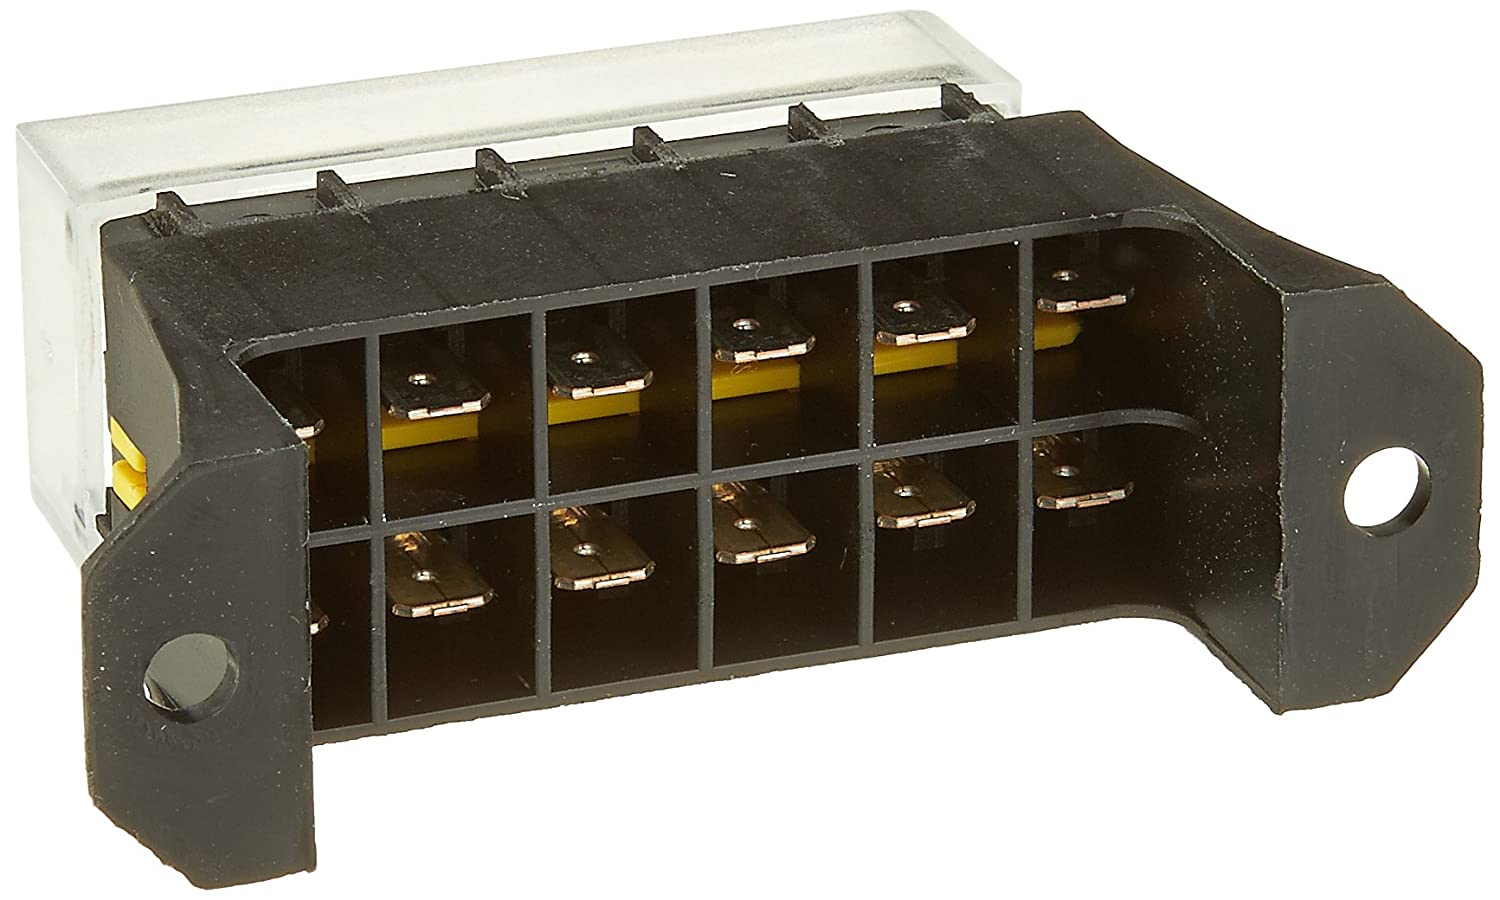 71aUQ89jP0L._SL1500_ amazon com hella h84960081 6 way axial single fuse box automotive Axial Fuse Glass at honlapkeszites.co